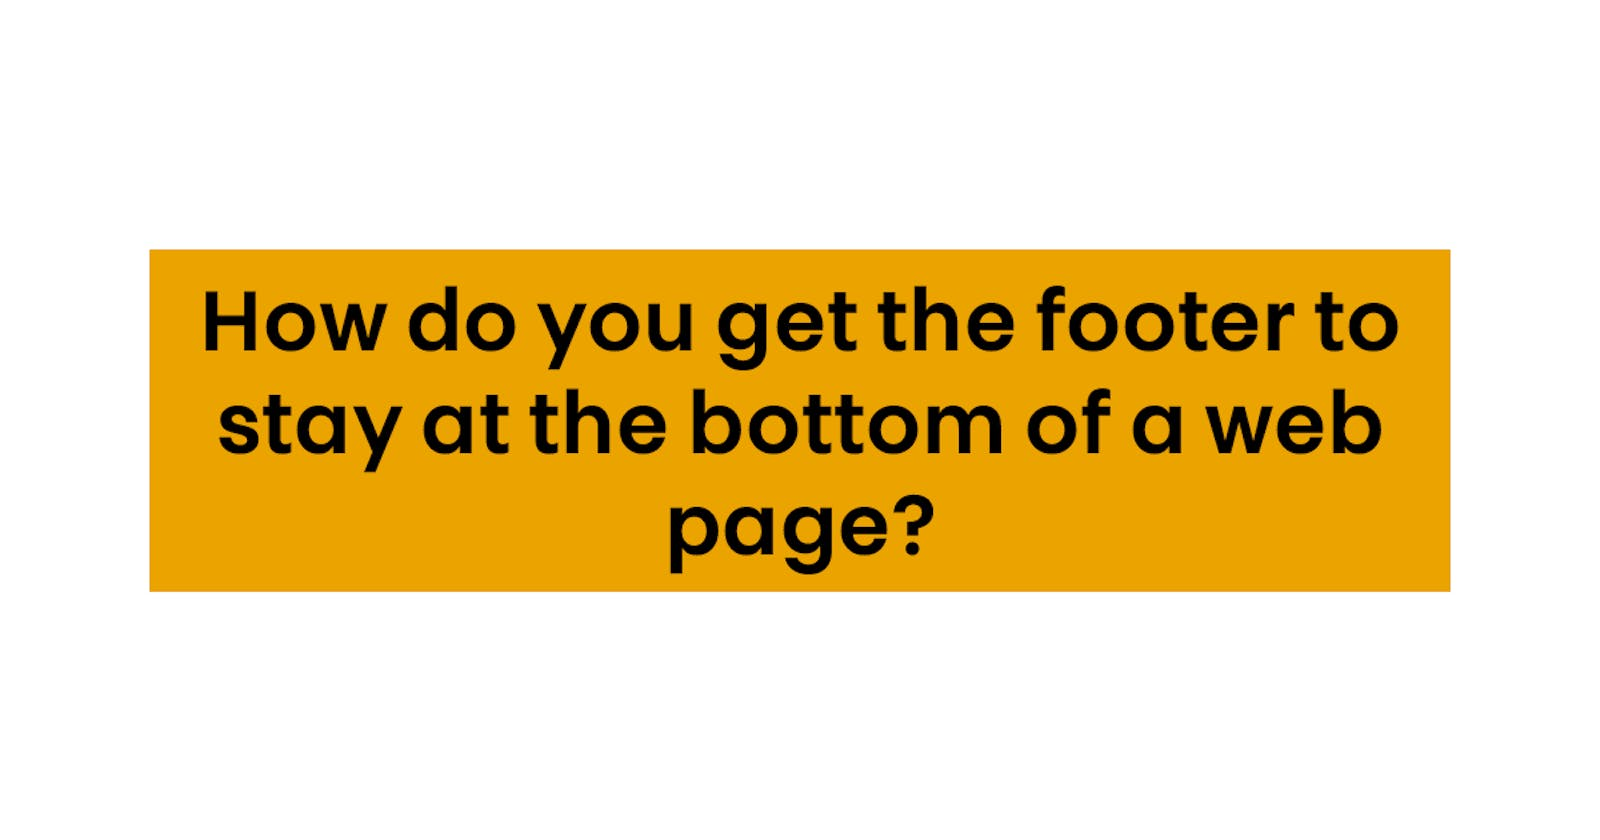 How do you get the footer to stay at the bottom of a web page? (HTML/CSS)